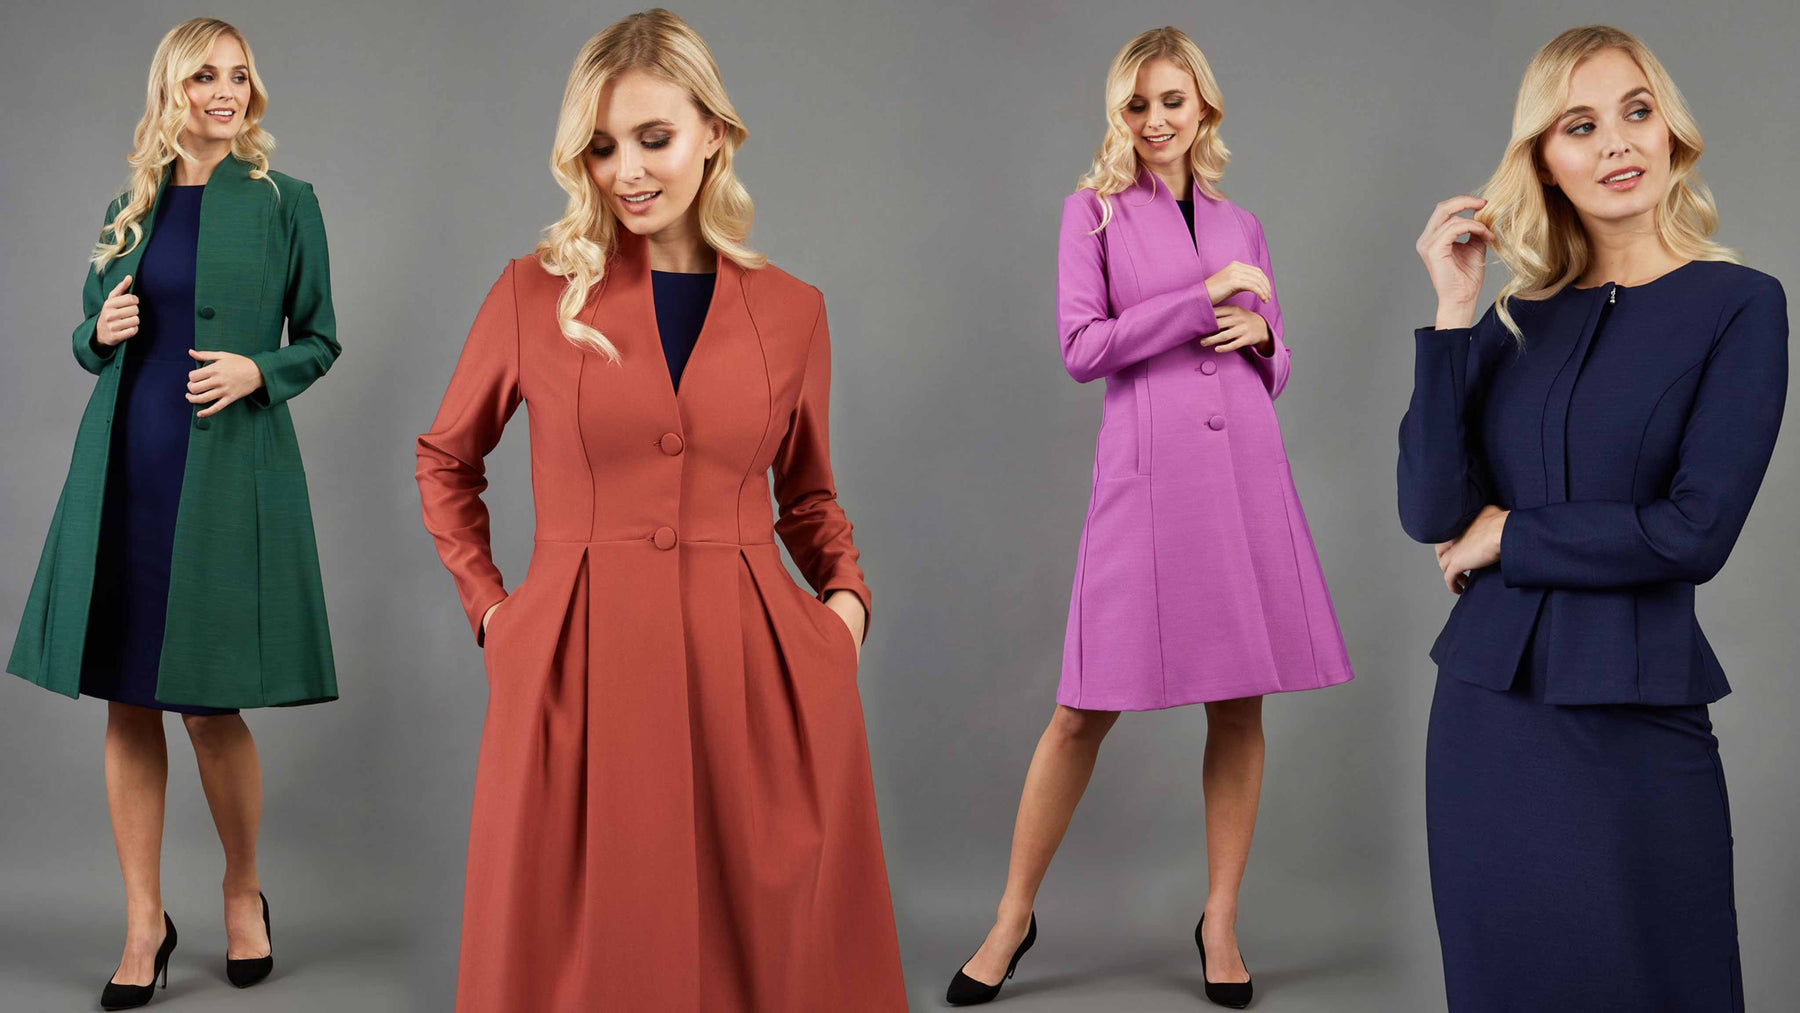 Blonde hair models are wearing green, brown, violet, navy coats and jackets by Diva Catwalk main banner offer discount up to 70% off sale banner